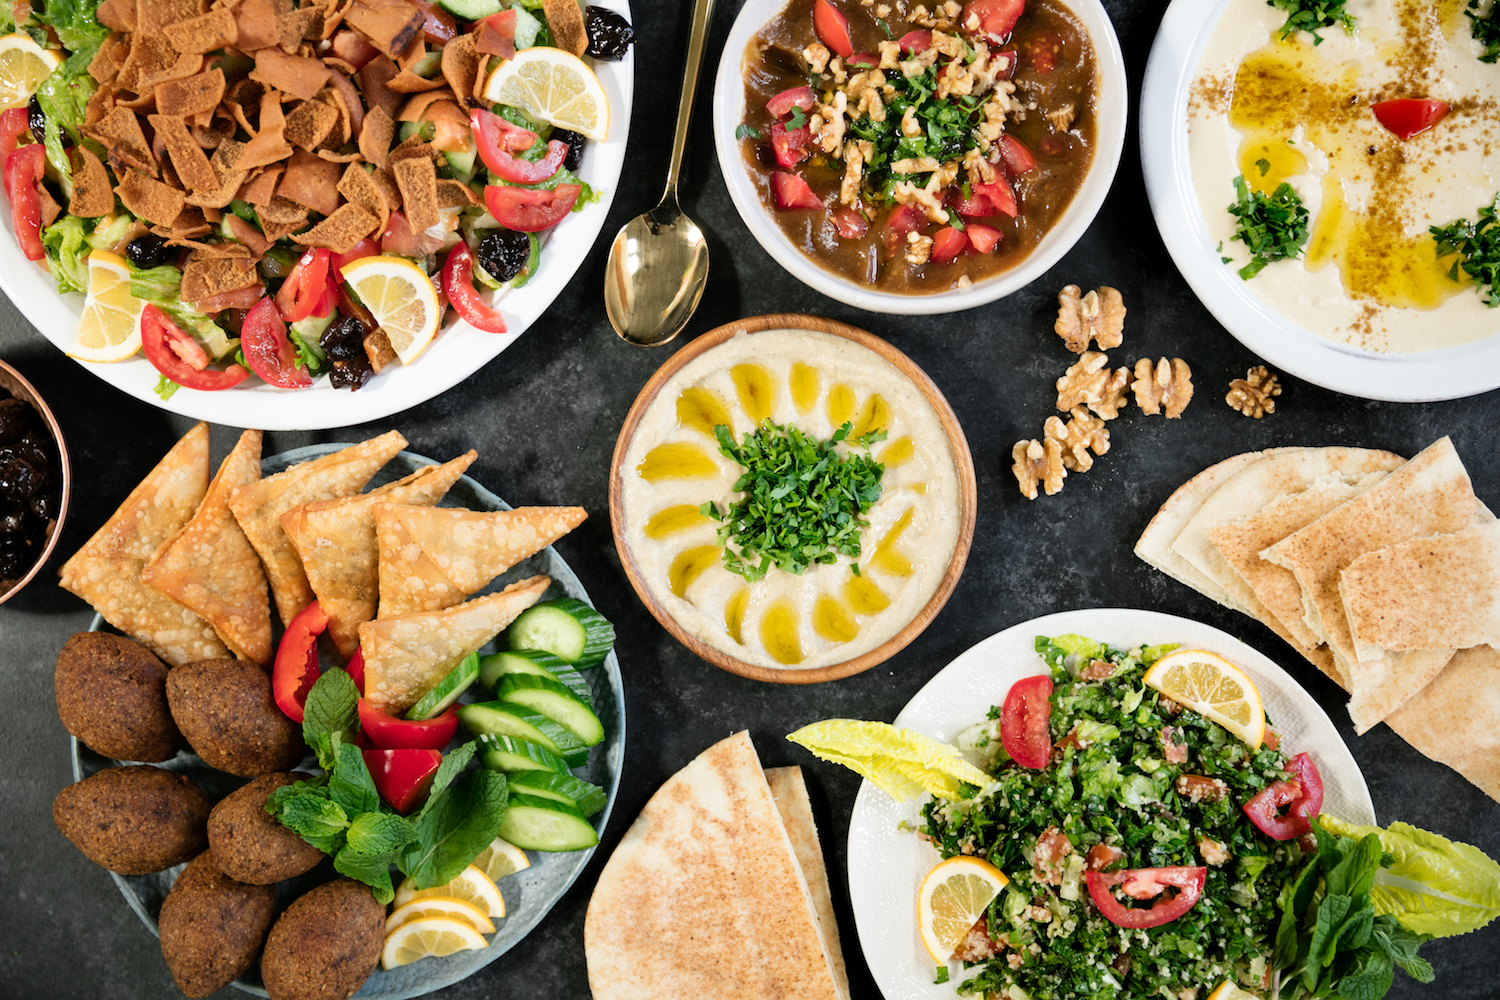 Warning! This article is about the delicious, delectable, mouthwatering, savory meals you could be eating right now, the Syrian dishes.